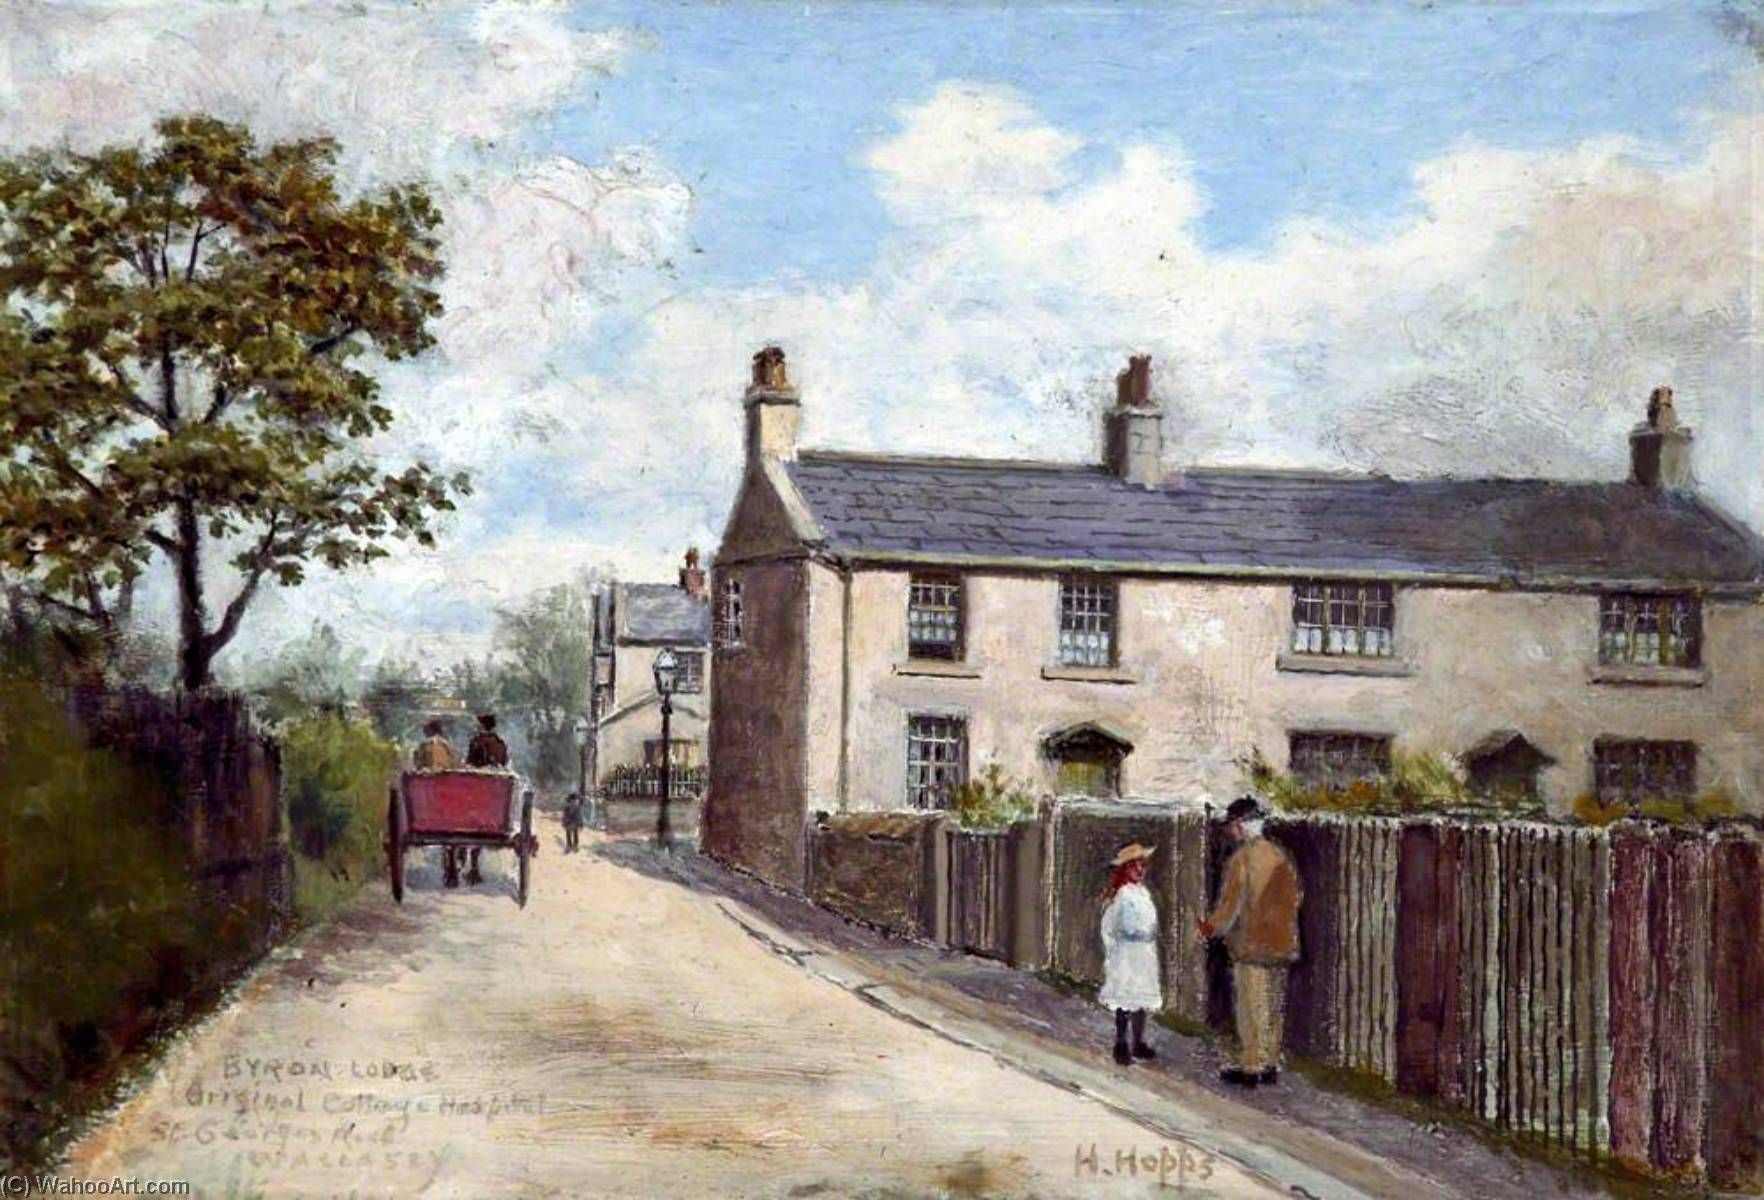 Byron Lodge, St George`s Road, Wallasey, Wirral by Harold Hopps | Art Reproduction | WahooArt.com